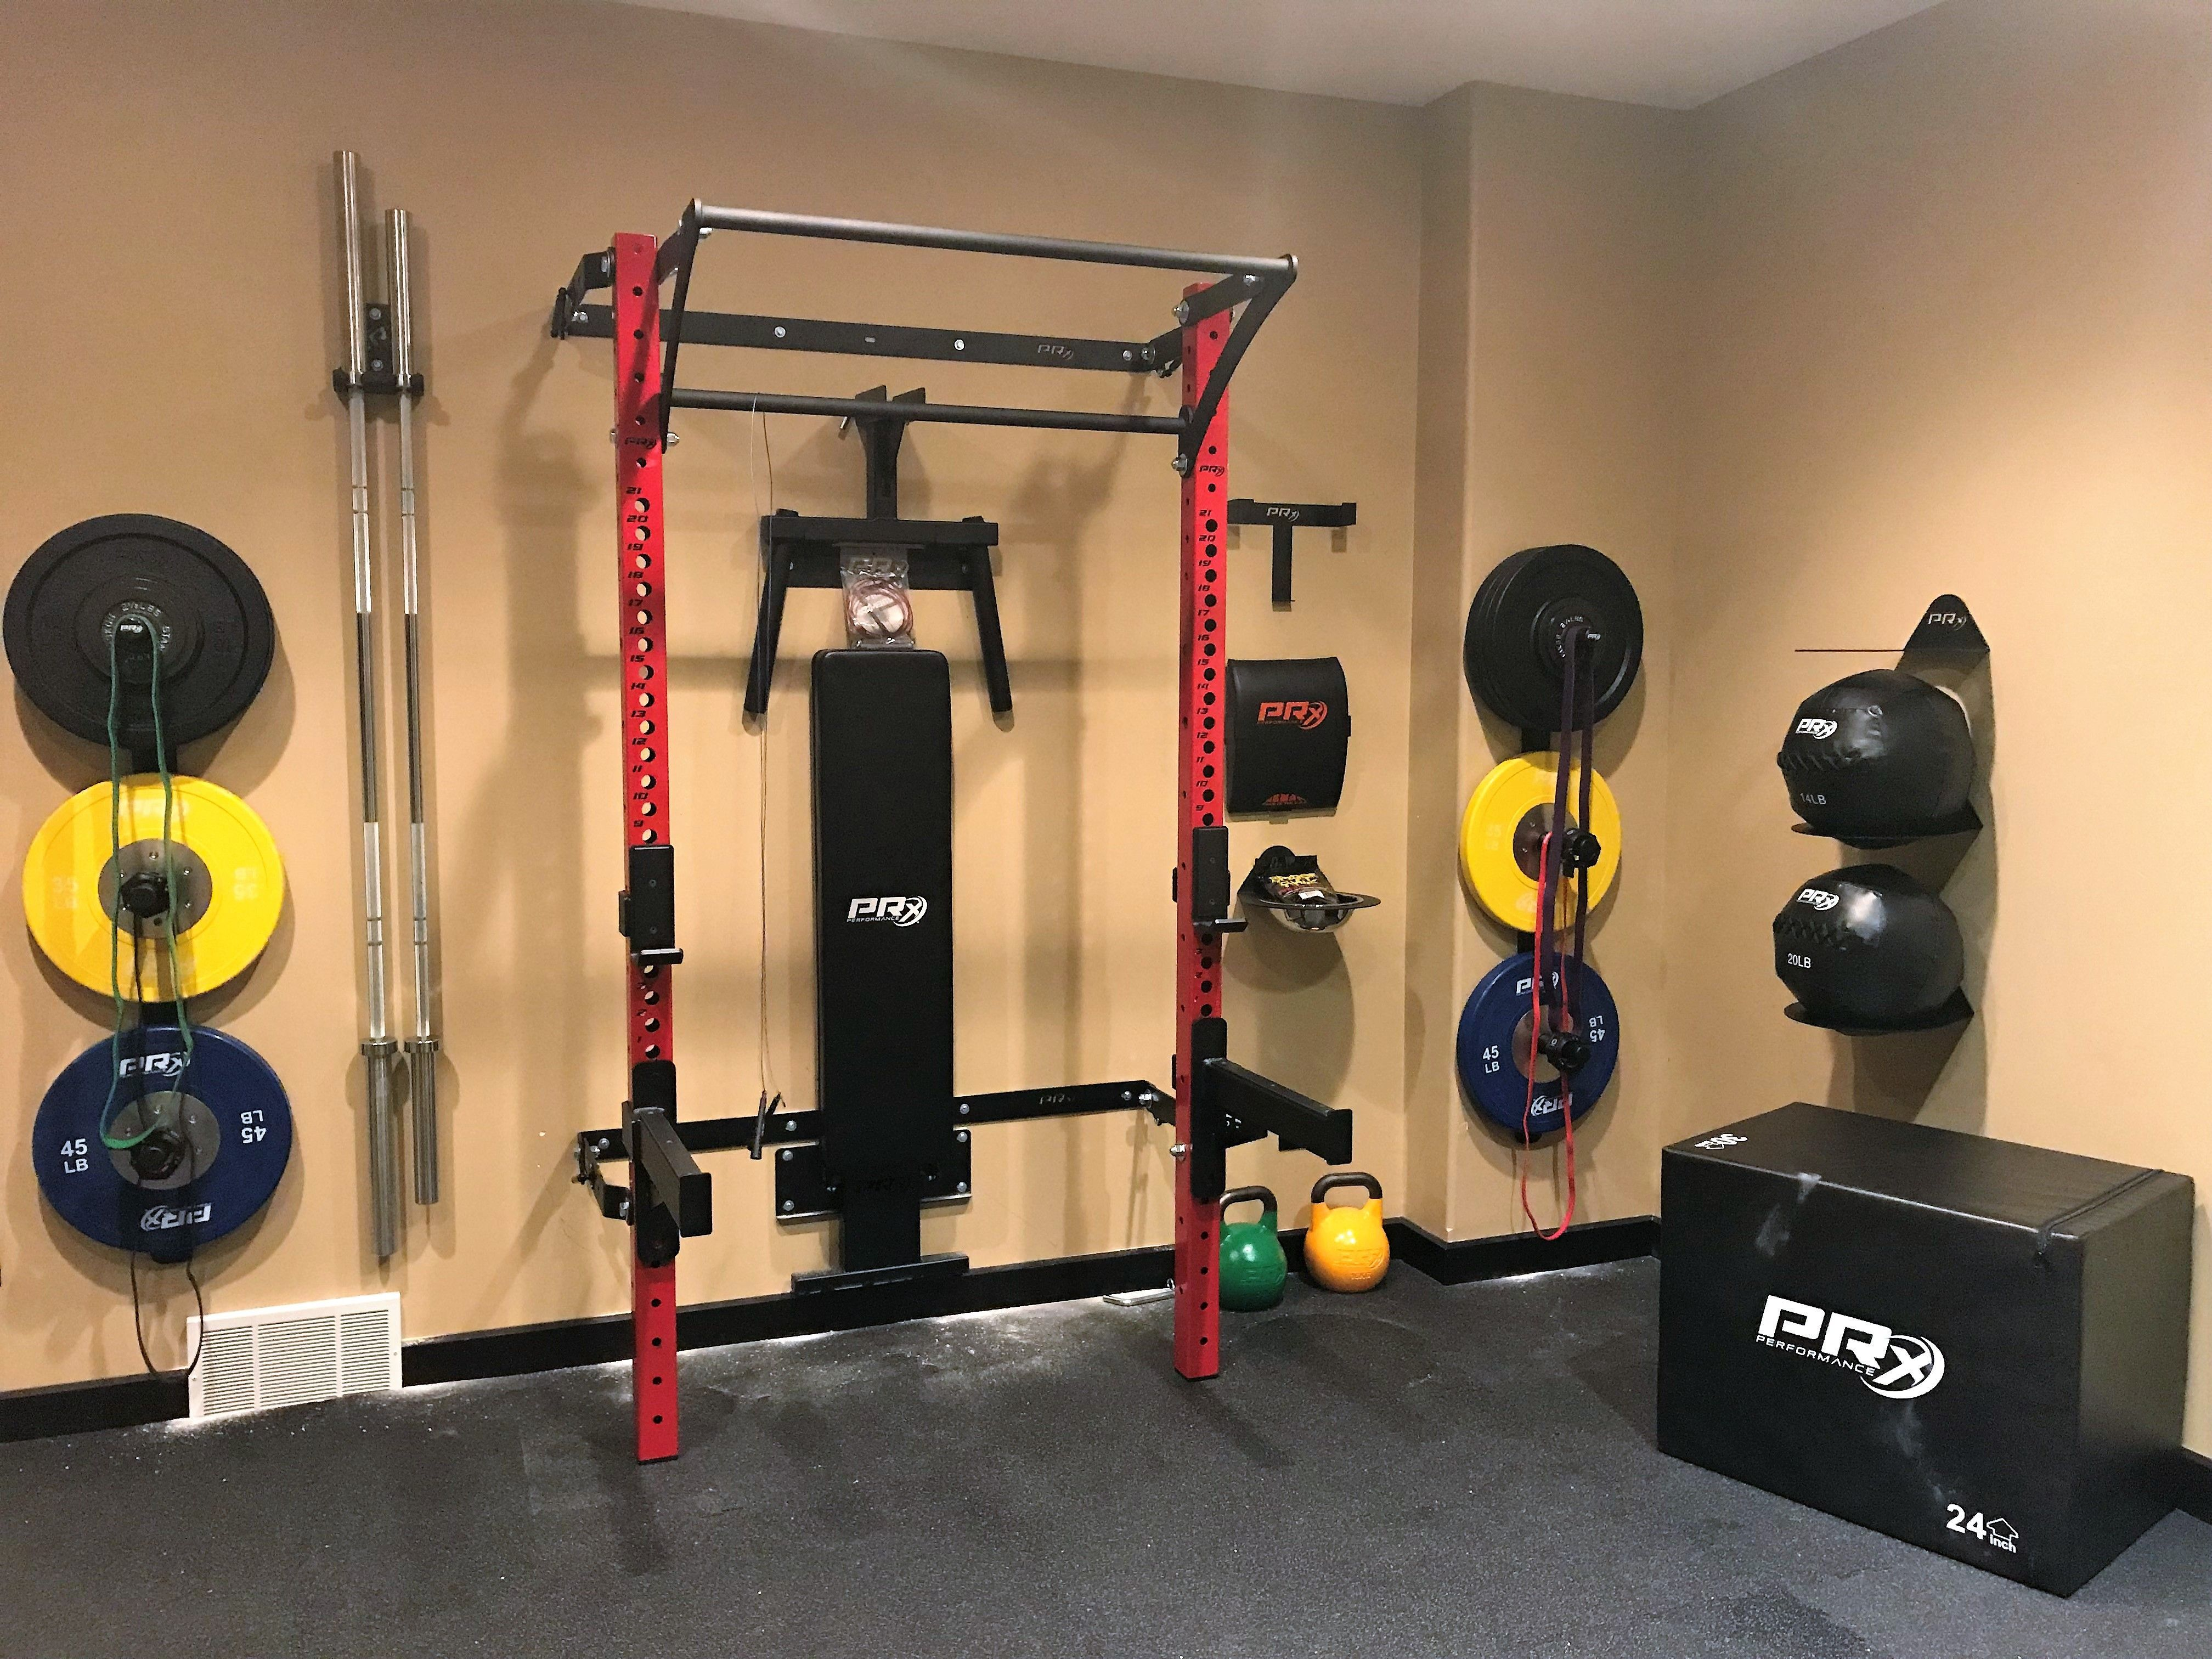 All The Colors To Brighten Up Any Workout Dream Home Gym Home Gym Garage Gym Interior